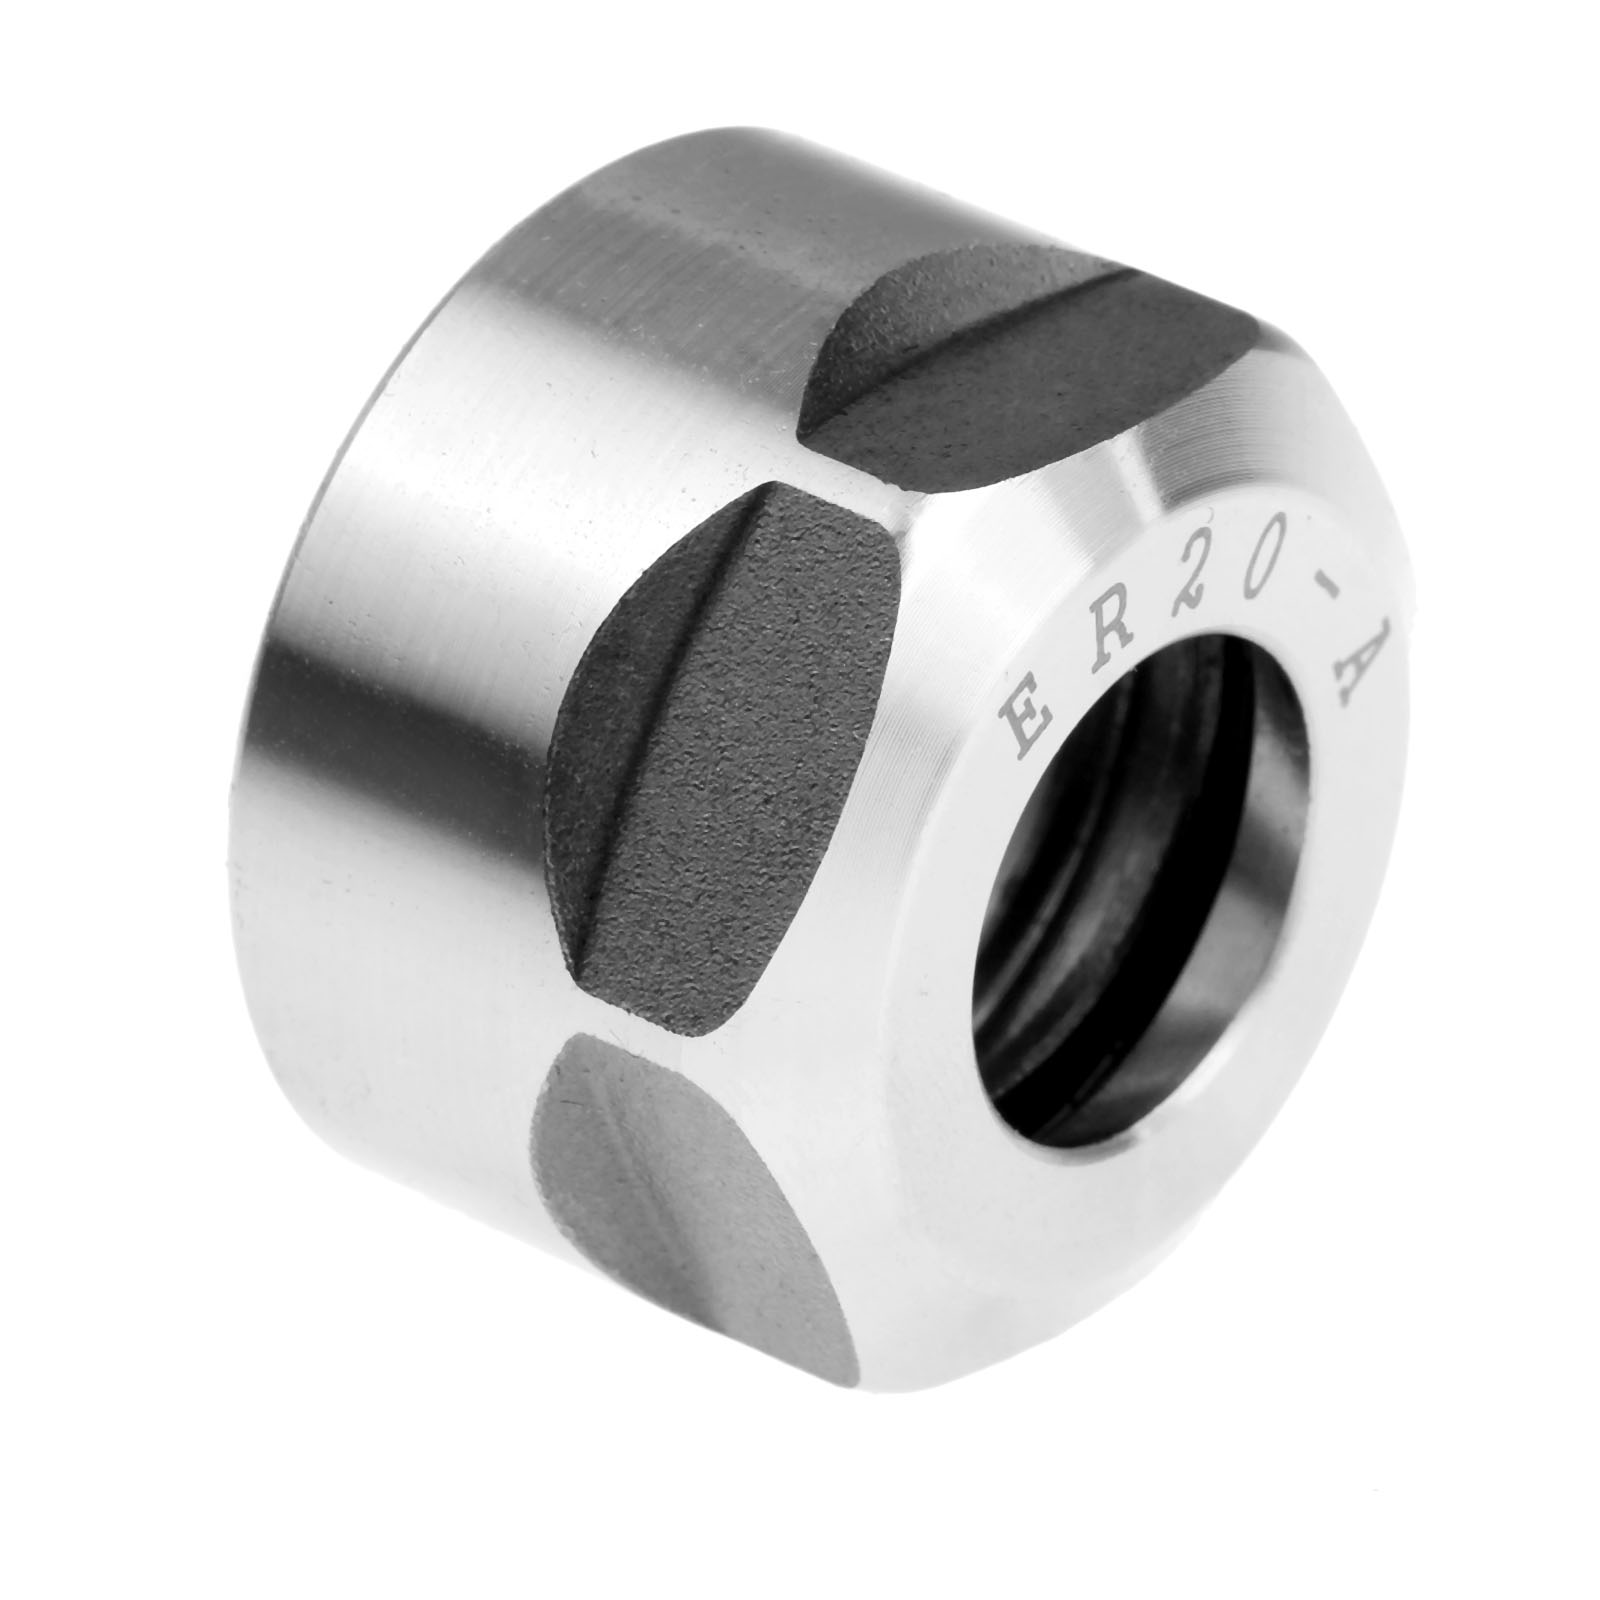 1pcs ER20 A Type Collet Clamping Nut for CNC Milling Collet Chuck Holder Lathe